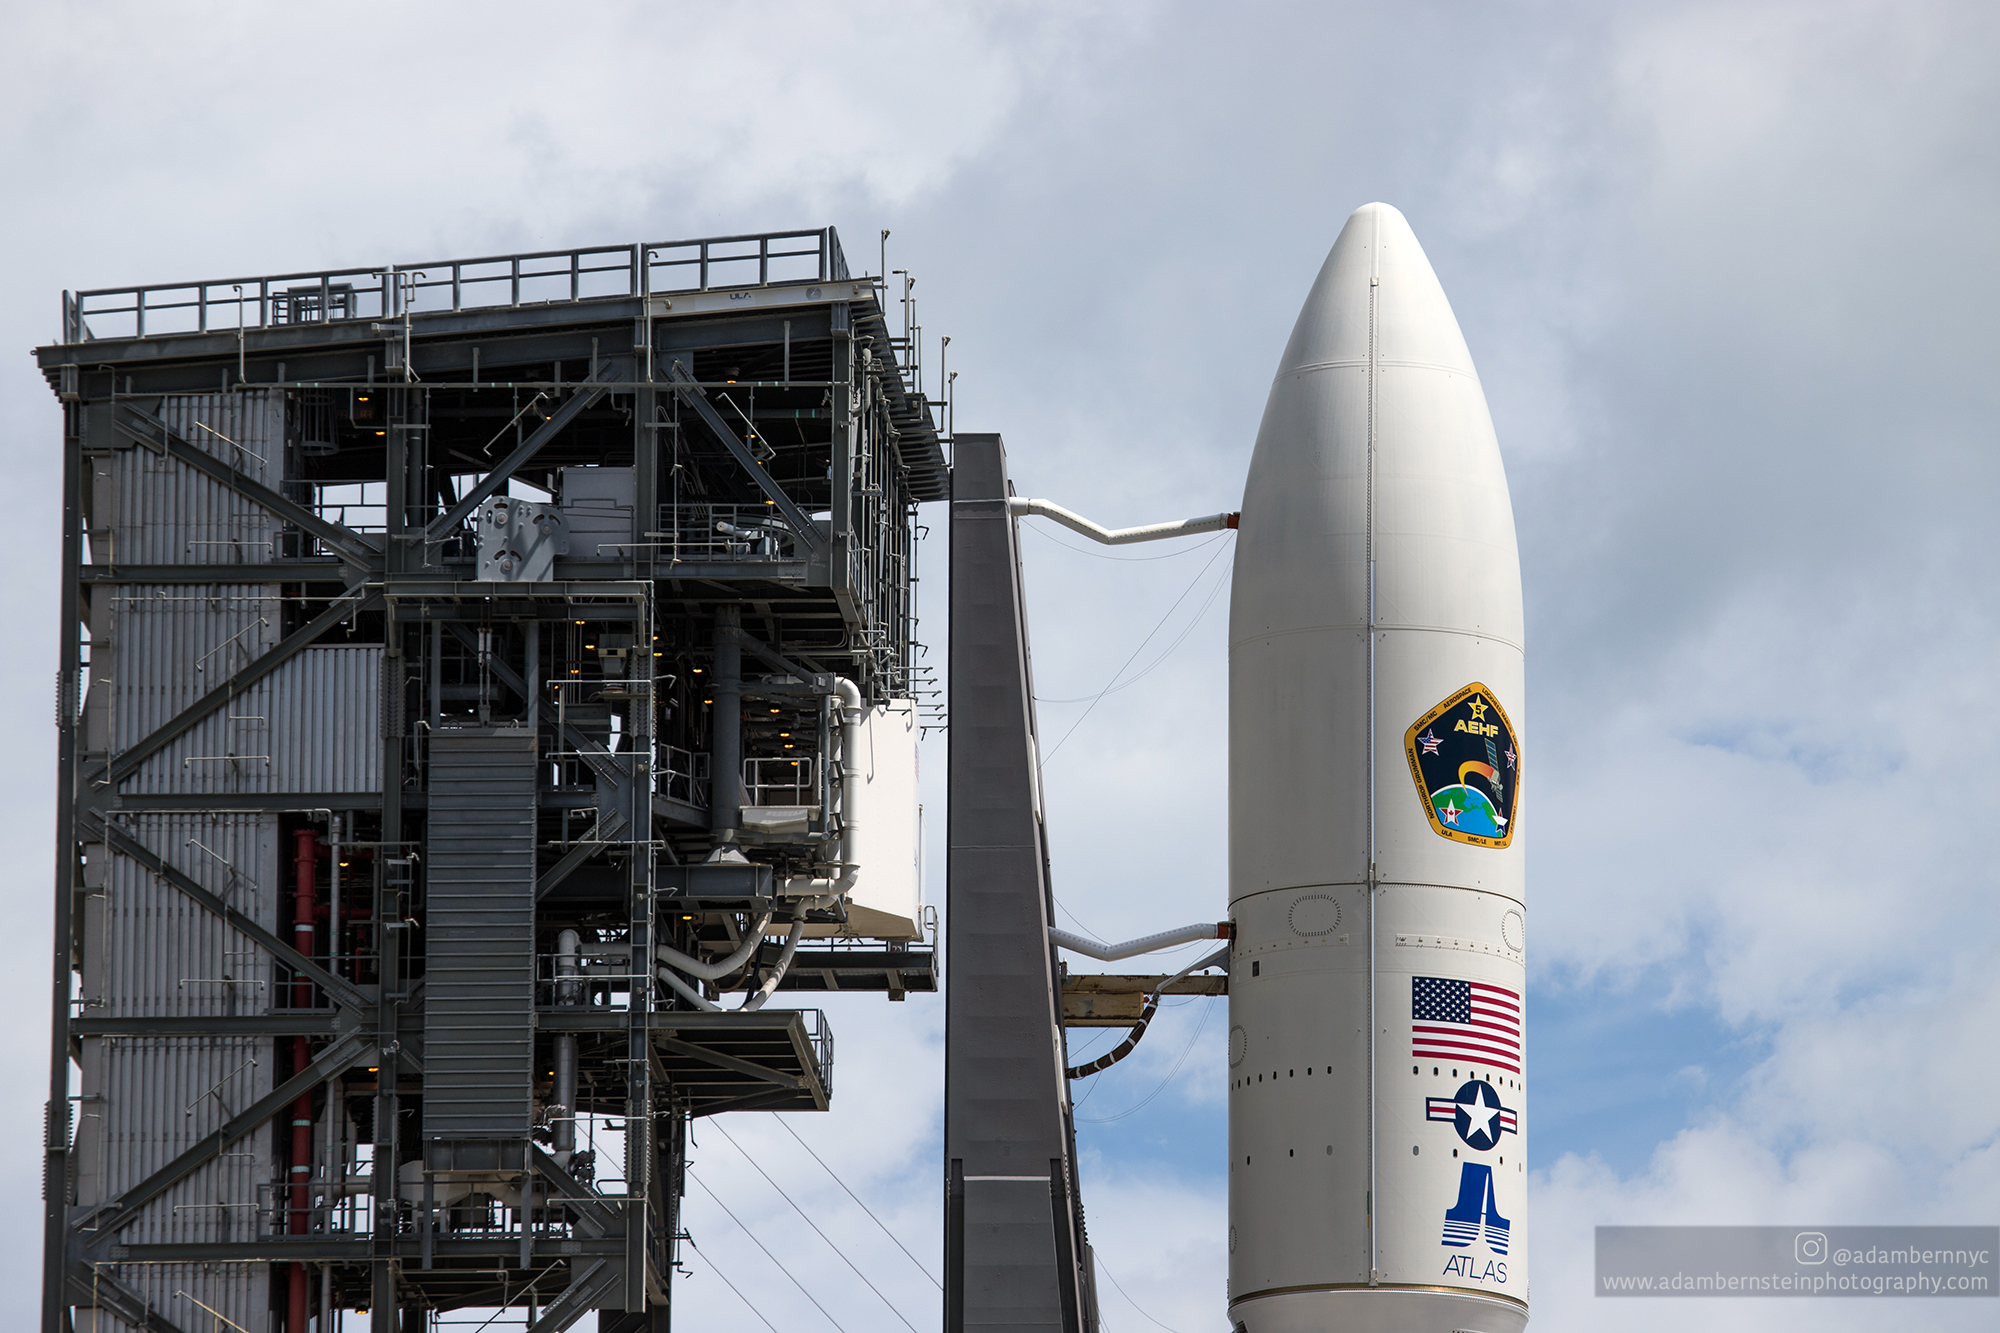 The Atlas V 511 rocket with Centaur upper stage and a payload fairing 5 meters in diameter. This upcoming flight would be the 80th mission of the Atlas V rocket since it's first launch in 2002.